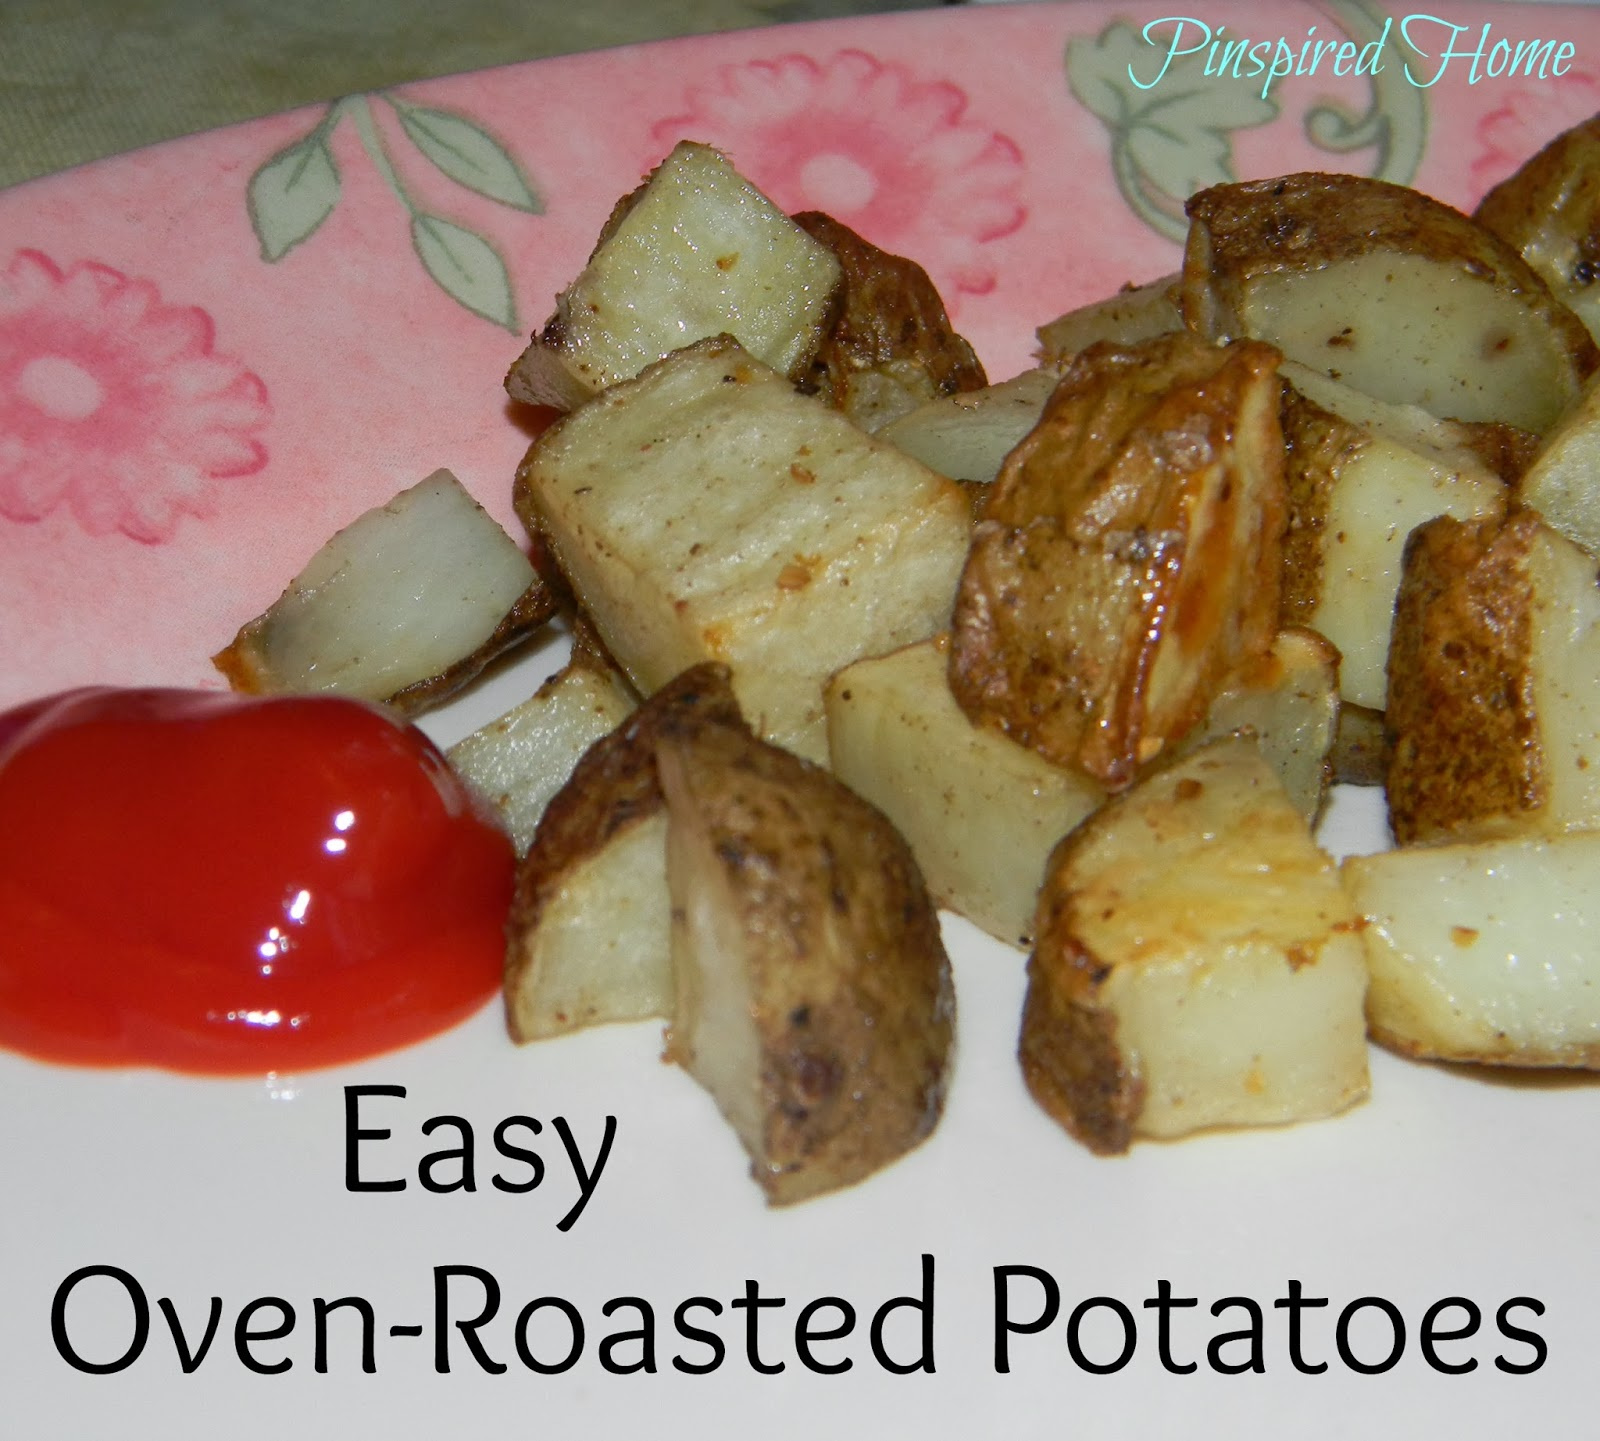 http://pinspiredhome.blogspot.com/2014/02/easy-oven-roasted-potatoes.html